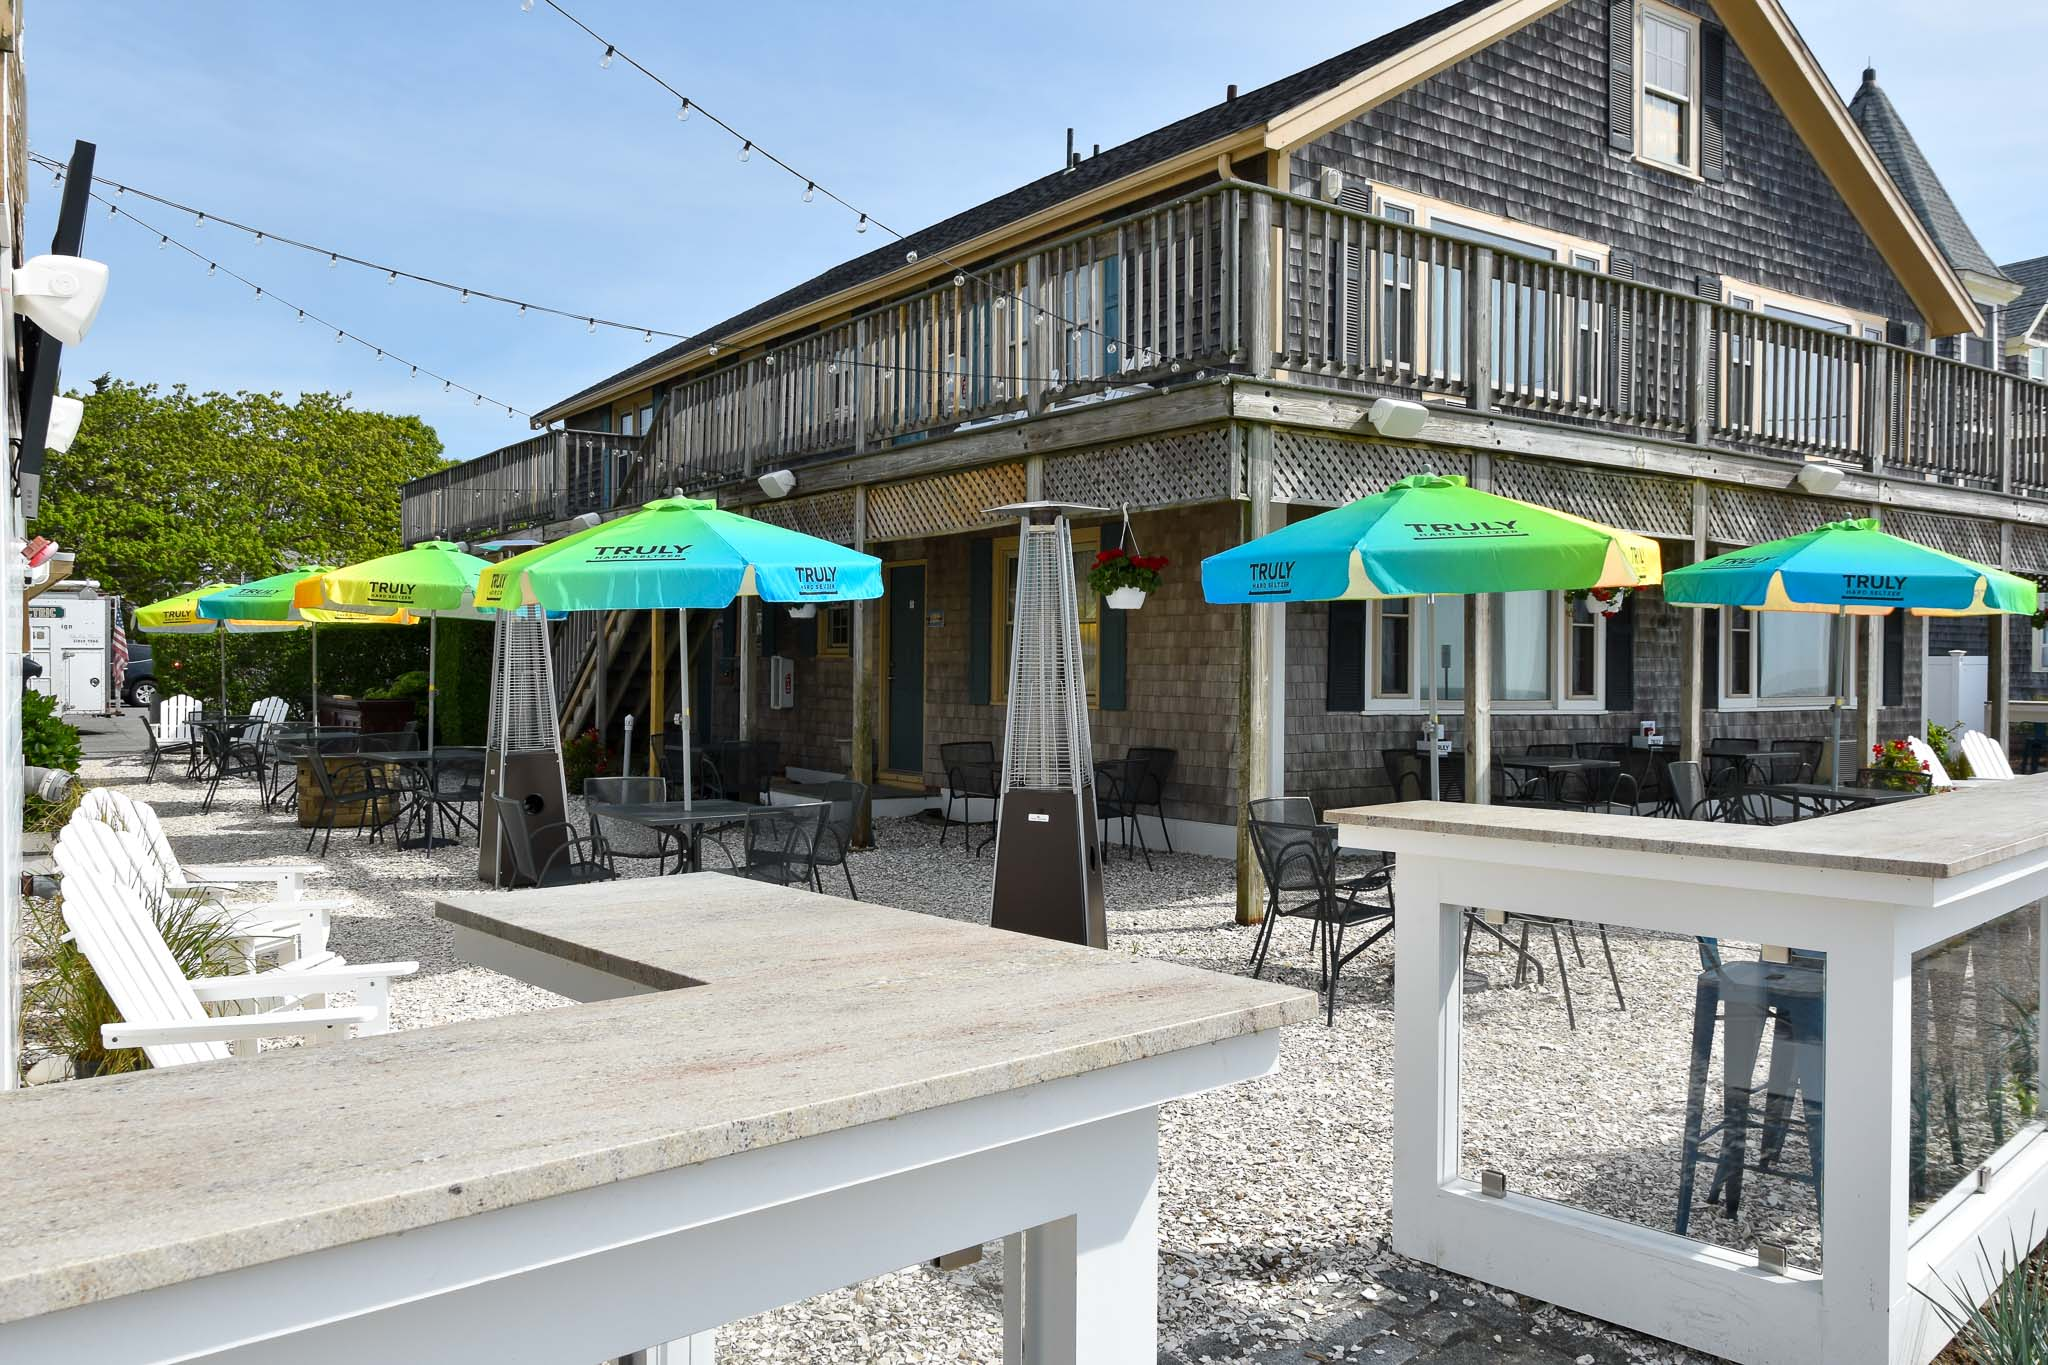 Outdoor seating at the Shipwrecked Falmouth